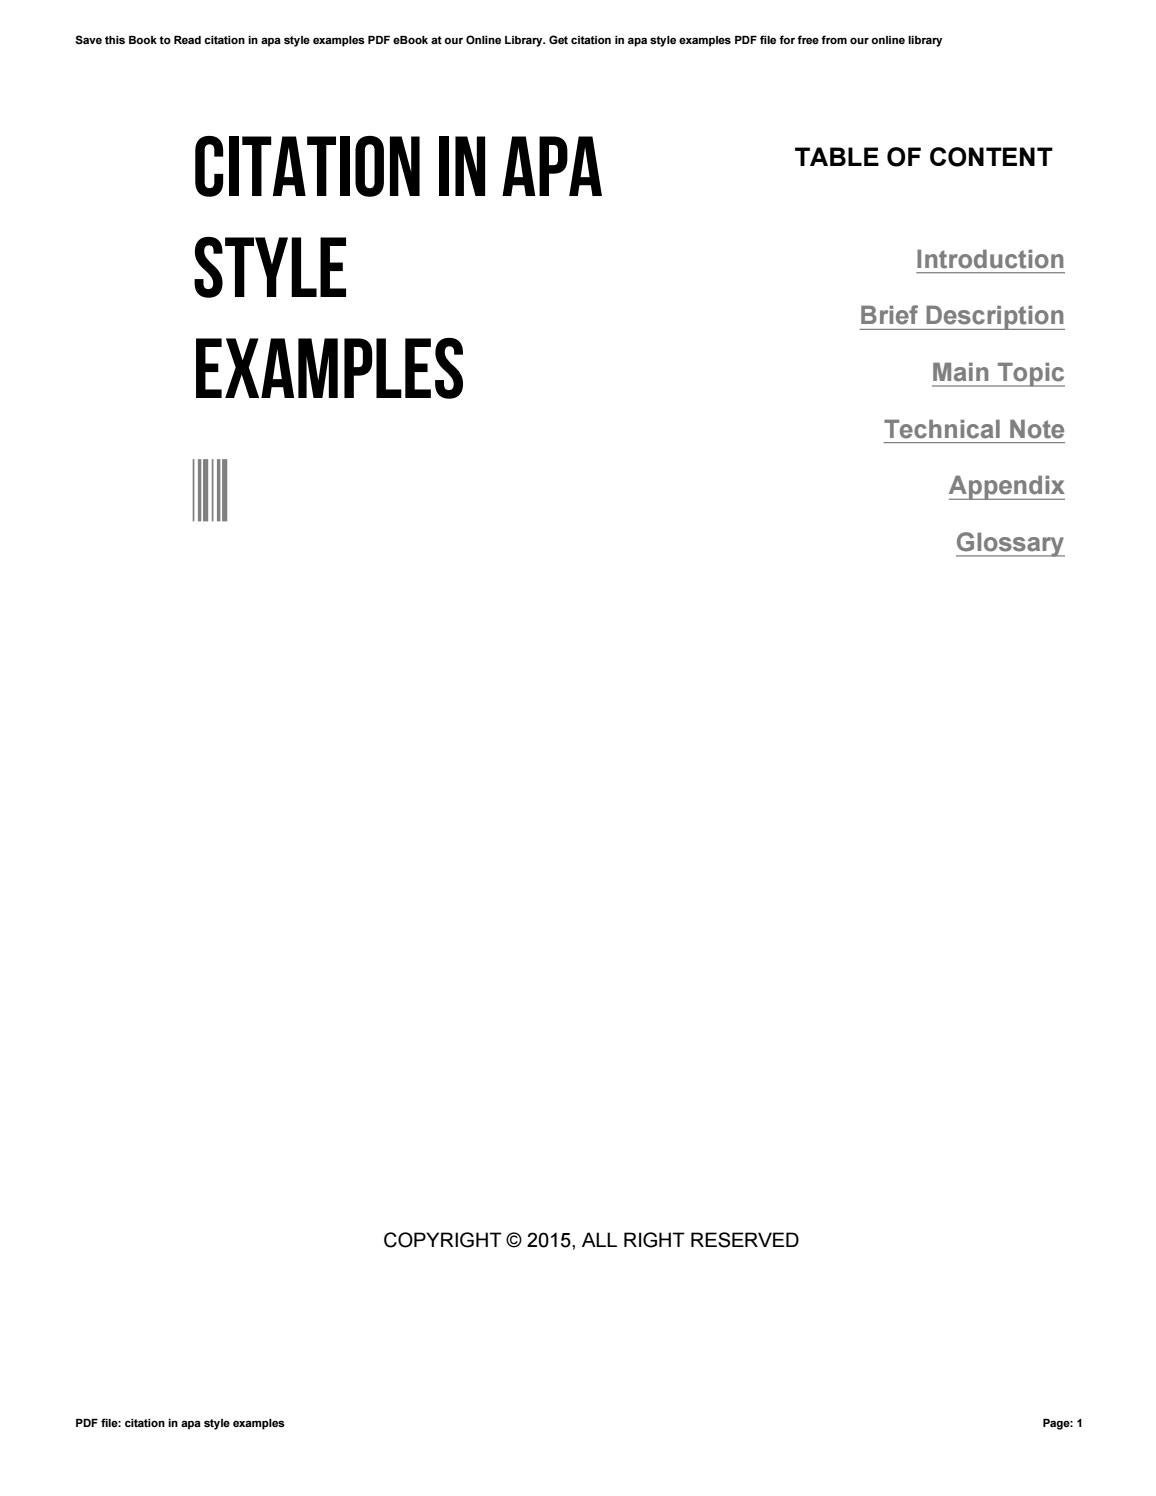 Citation in apa style examples by o055 issuu for Dental office manual template